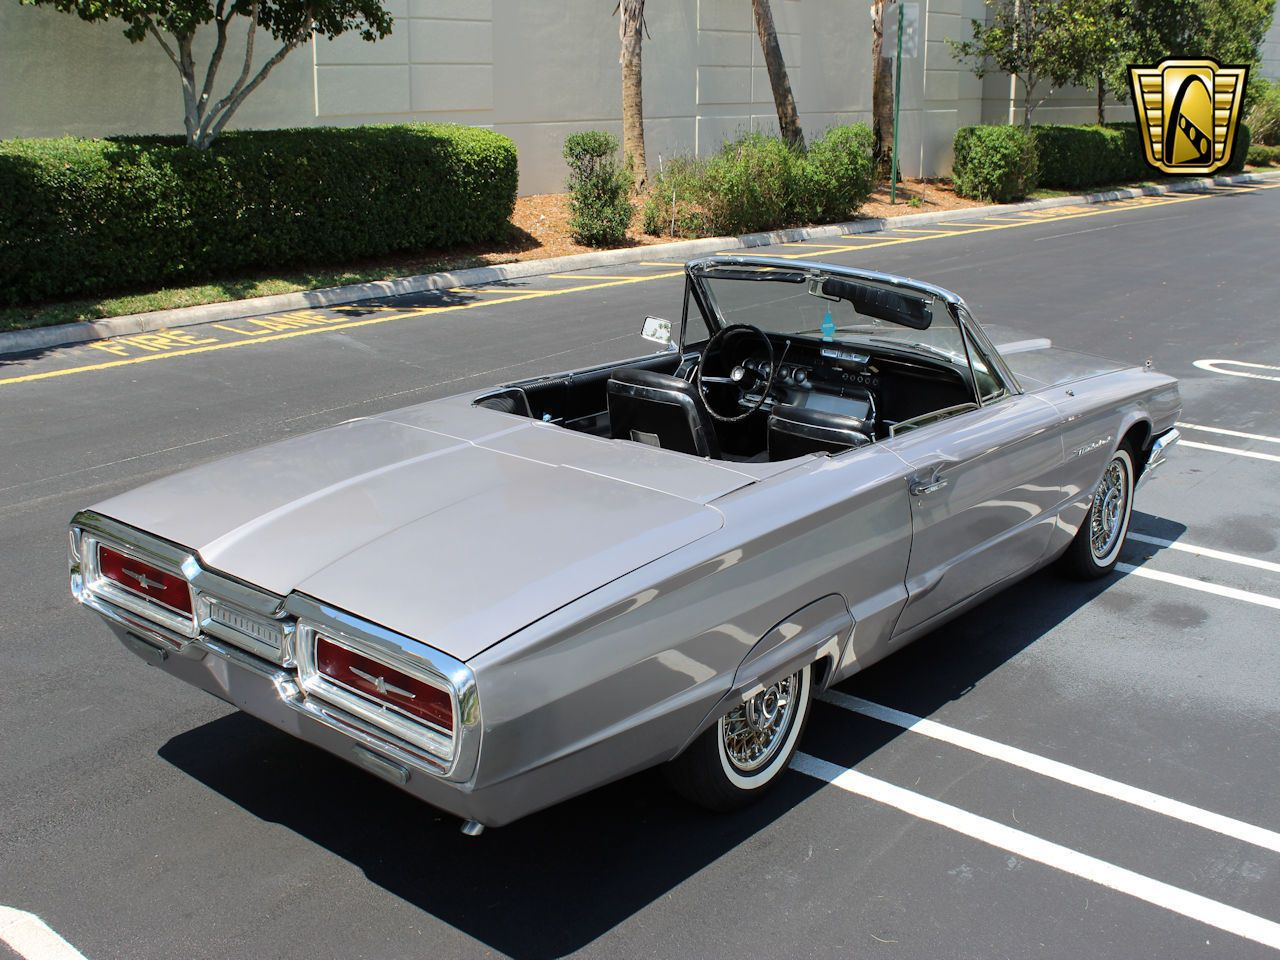 1964 Ford Thunderbird Gateway Classic Cars 714 Ftl Ford Thunderbird Classic Cars British 1964 Ford